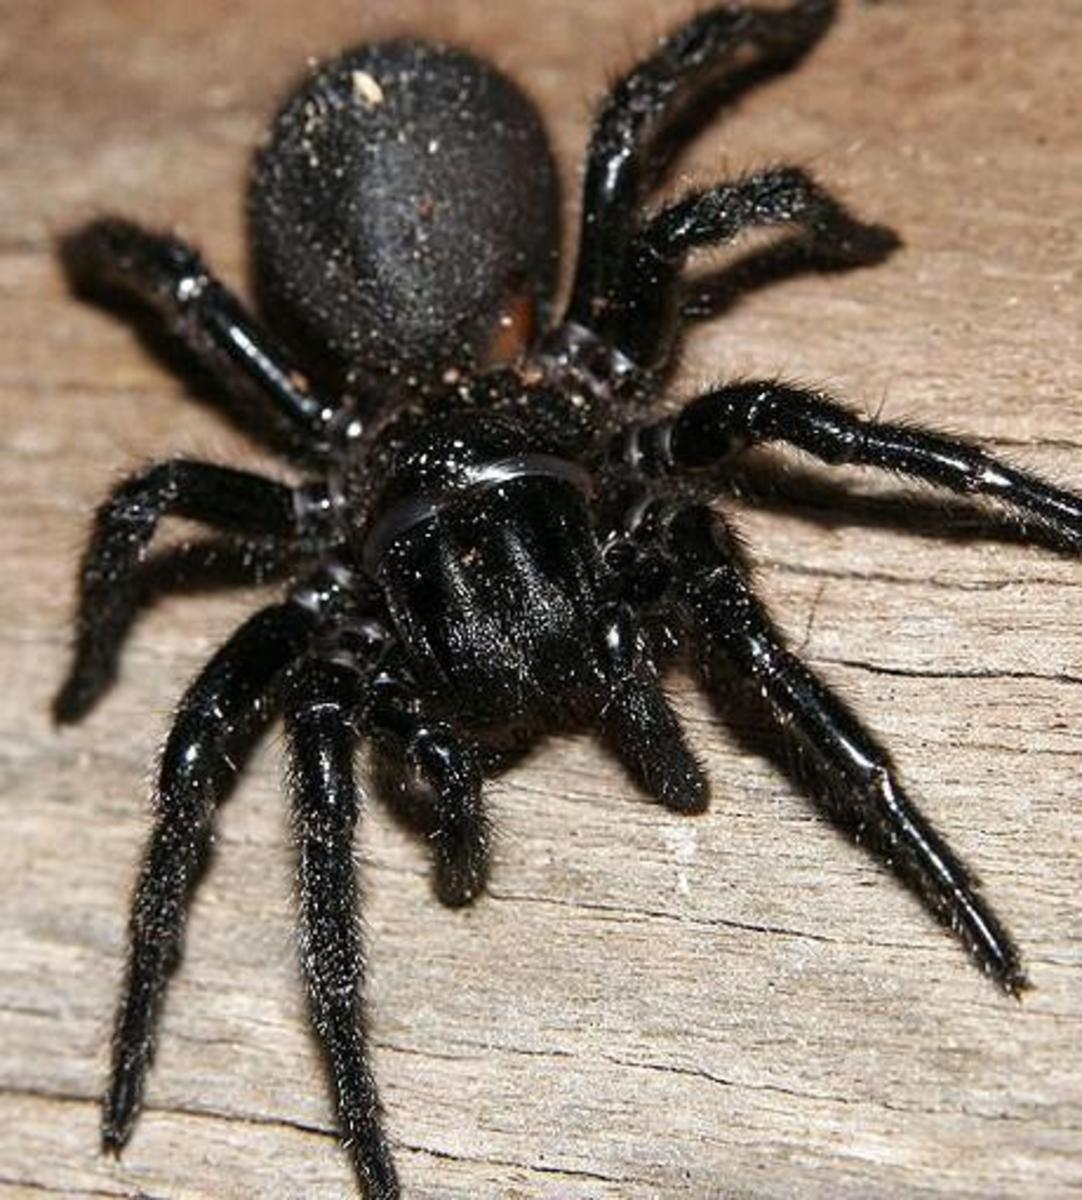 The spider belongs to the arthropod family, the most successful of the animal phyla